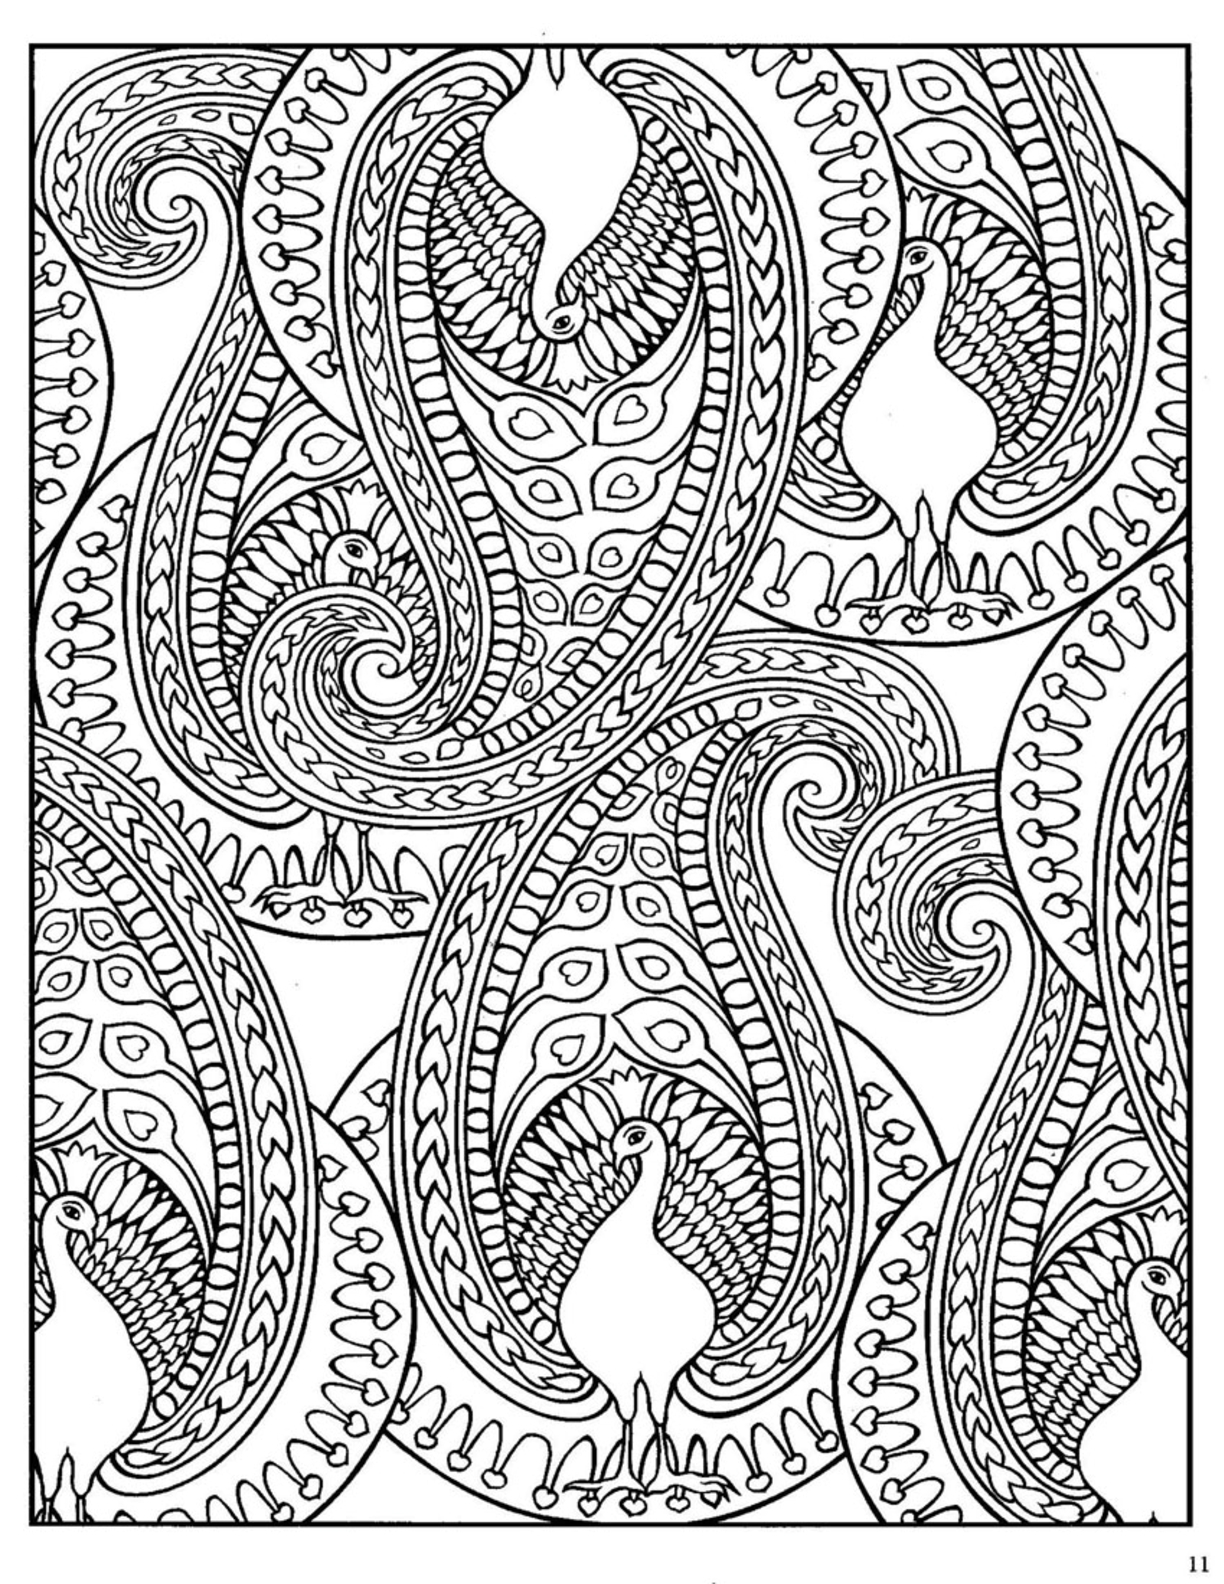 17 Paisley Designs To Color Images - Paisley Designs Coloring Book ...